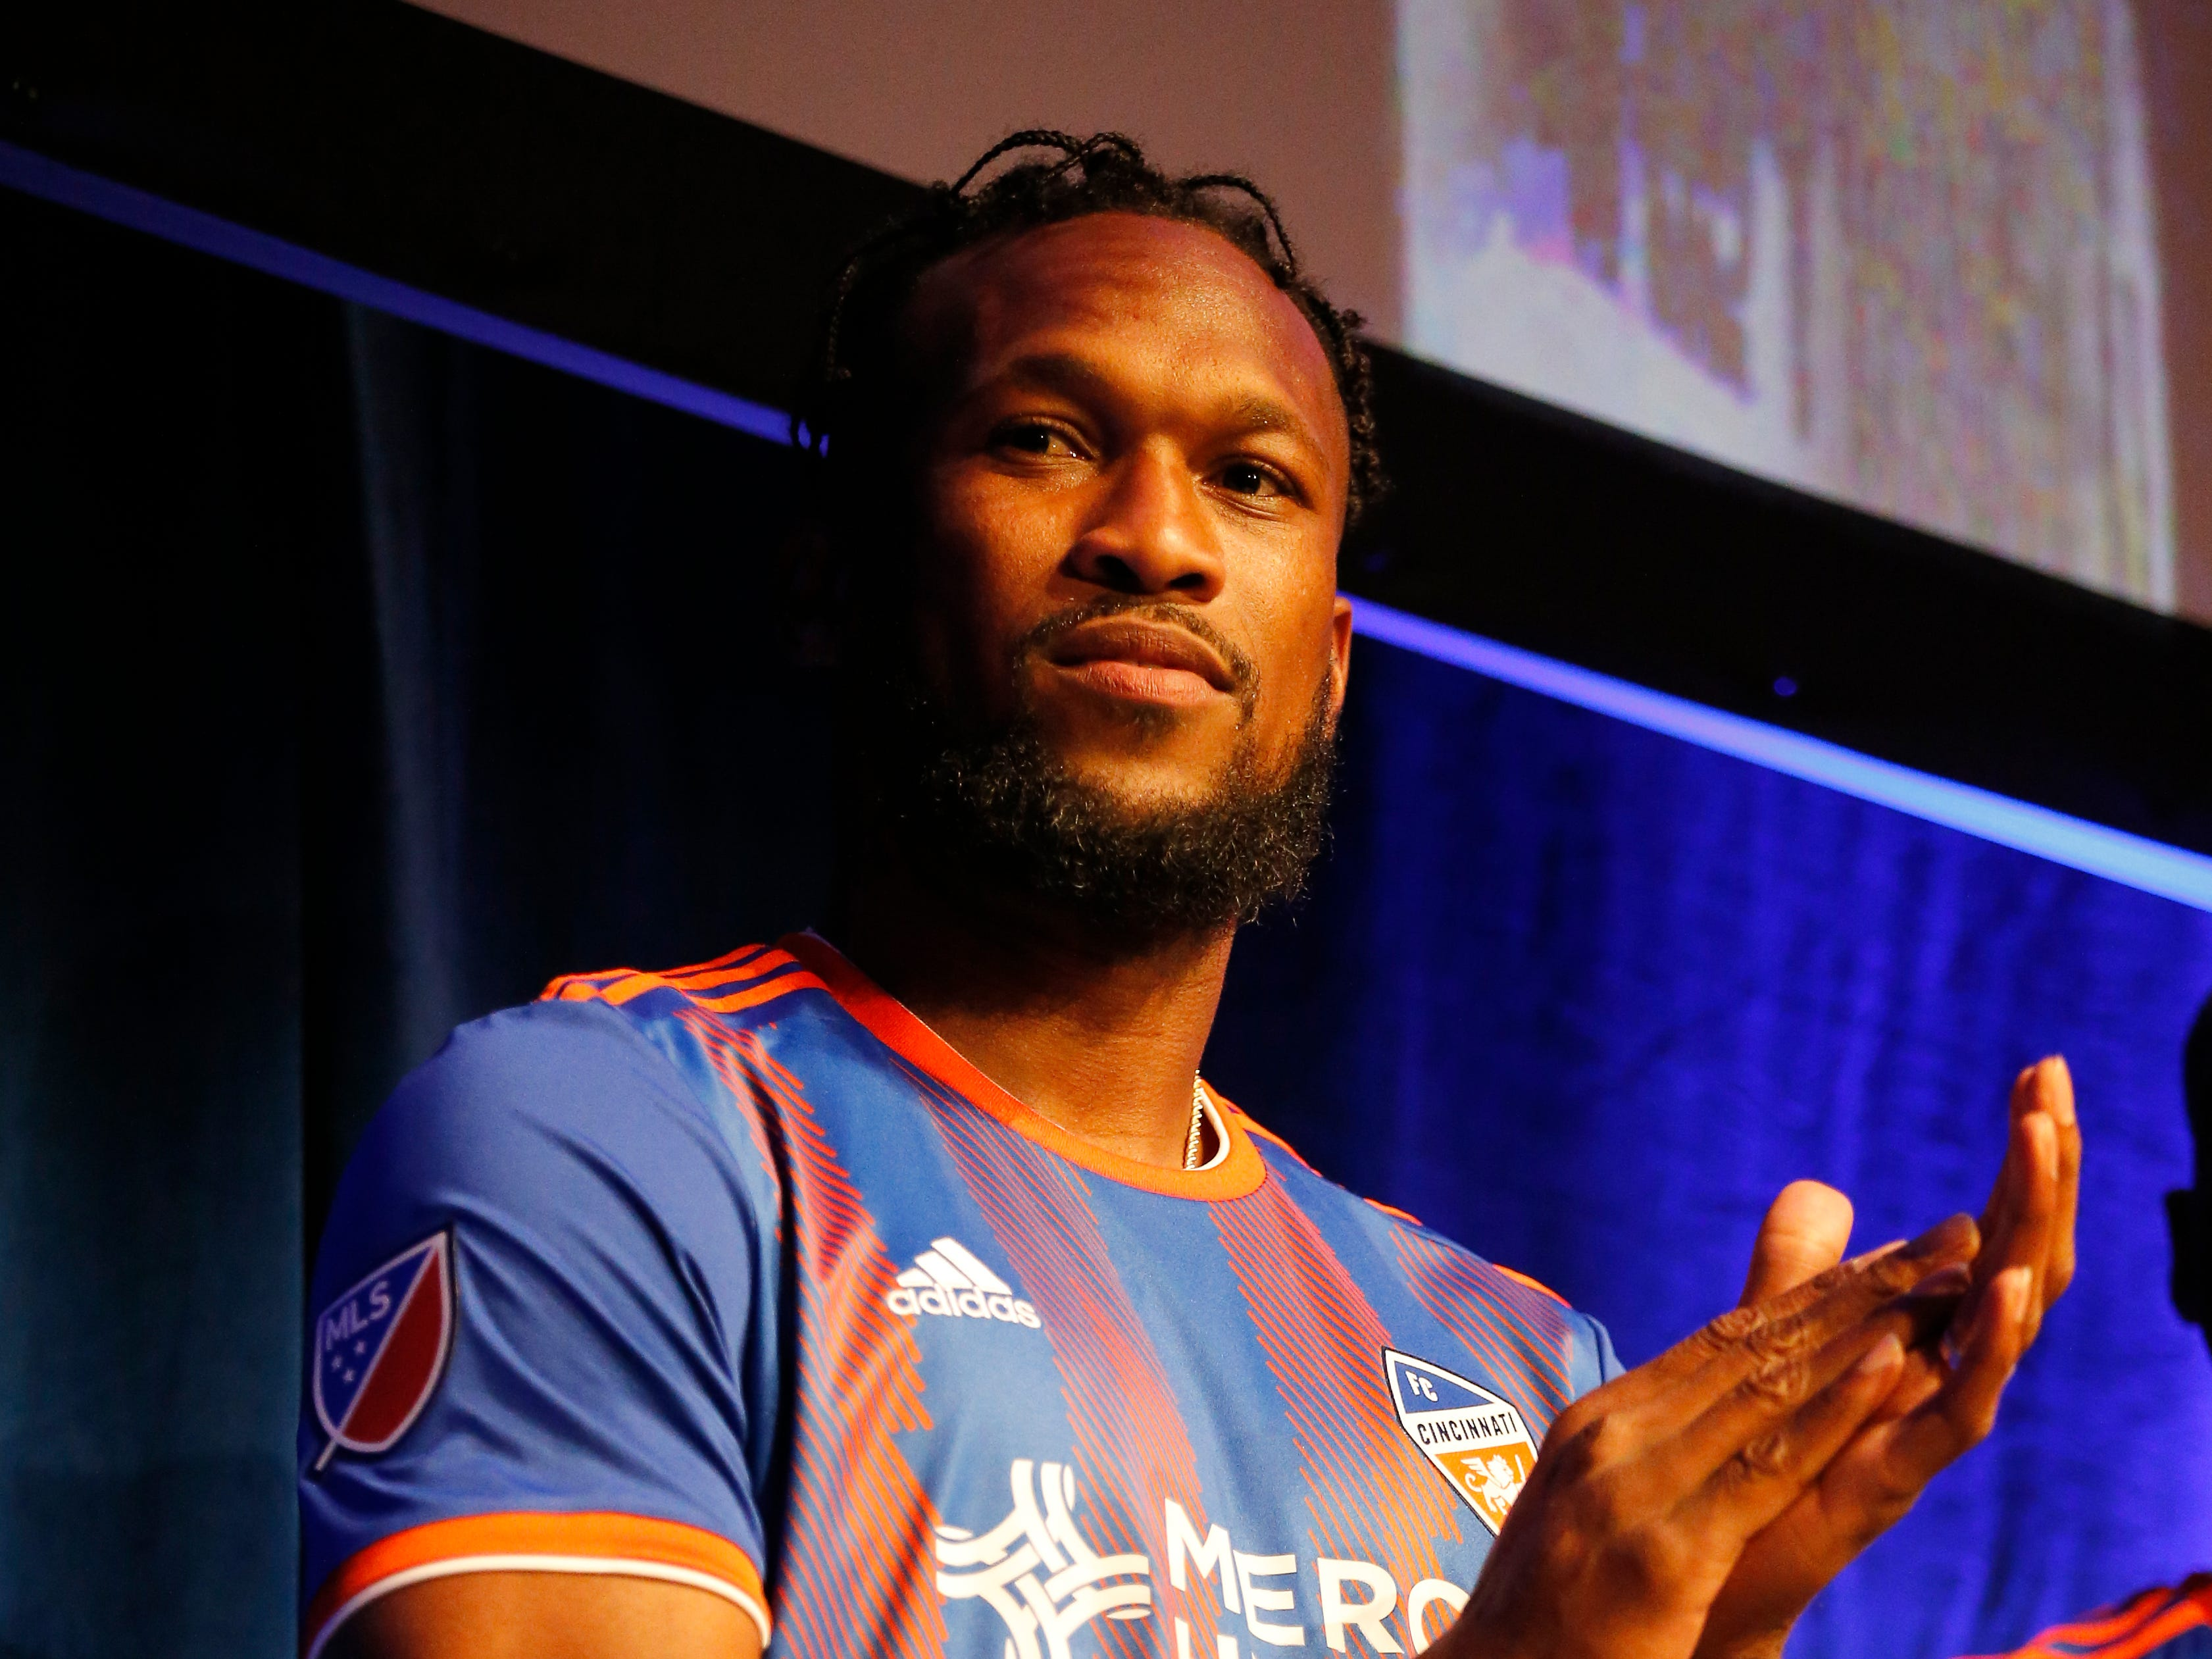 Kendall Waston wears his new jersey during an event to unveil FC Cincinnati's jersey for the team's inaugural season in Major League Soccer at the Music Hall Ballroom in the Over-the-Rhine neighborhood of Cincinnati on Monday, Feb. 11, 2019.